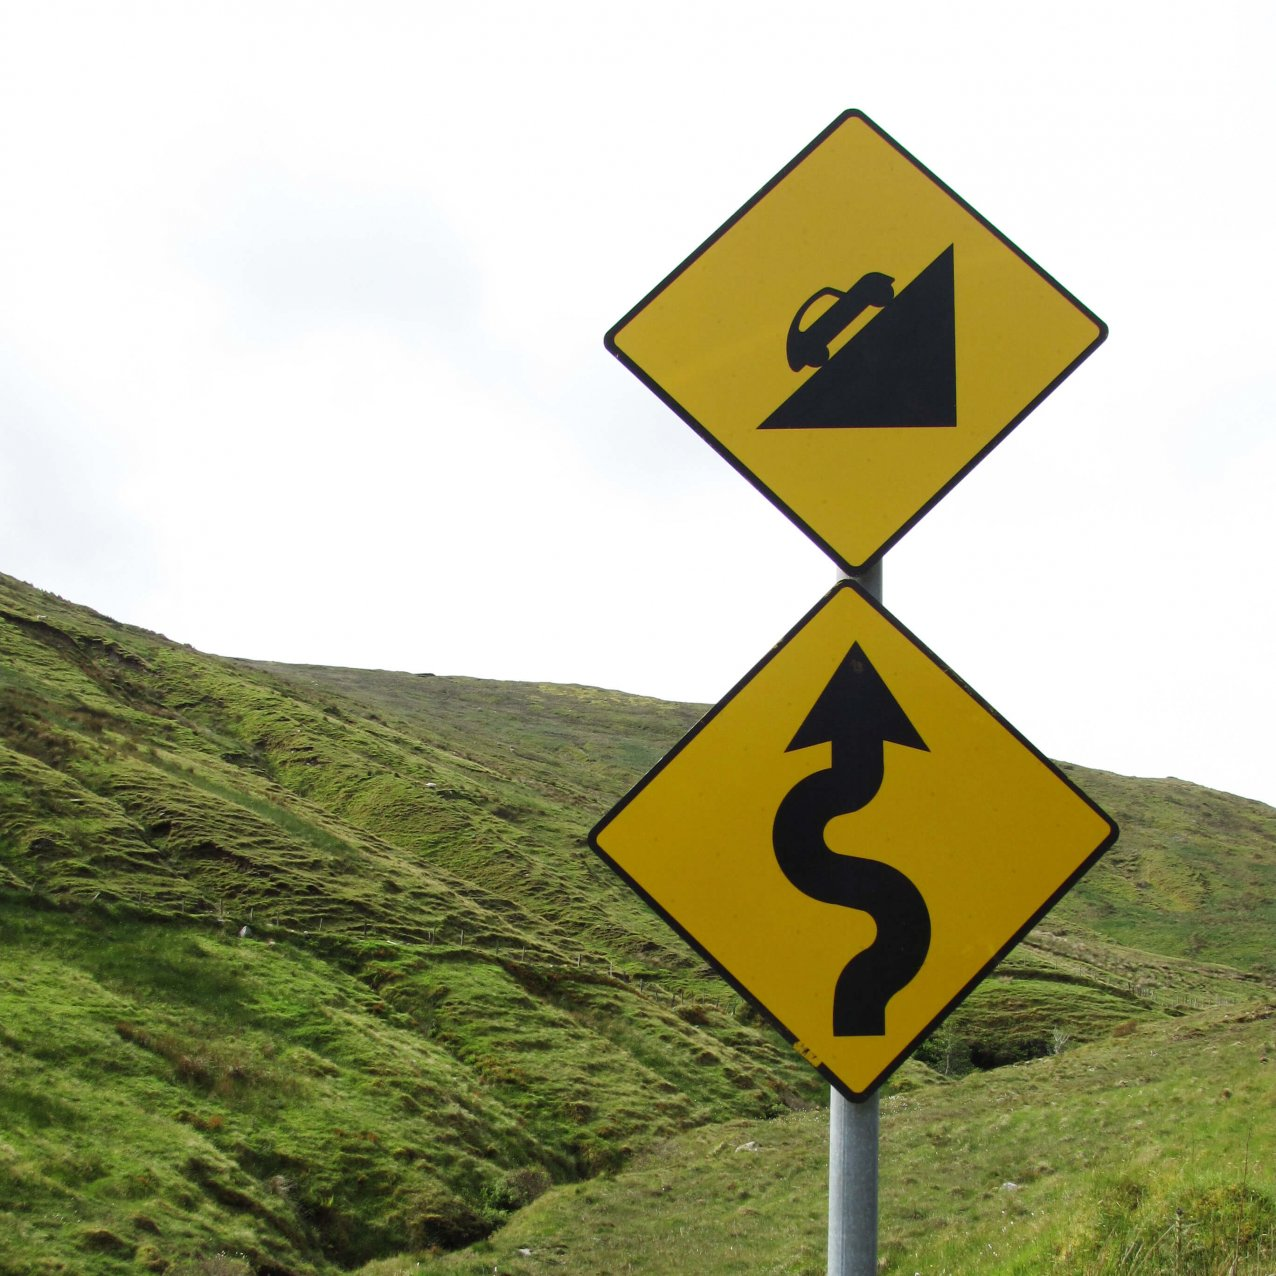 Roadsigns indicating a twisting, uphill climb ahead, with green hills in the background, somewhere in Ireland